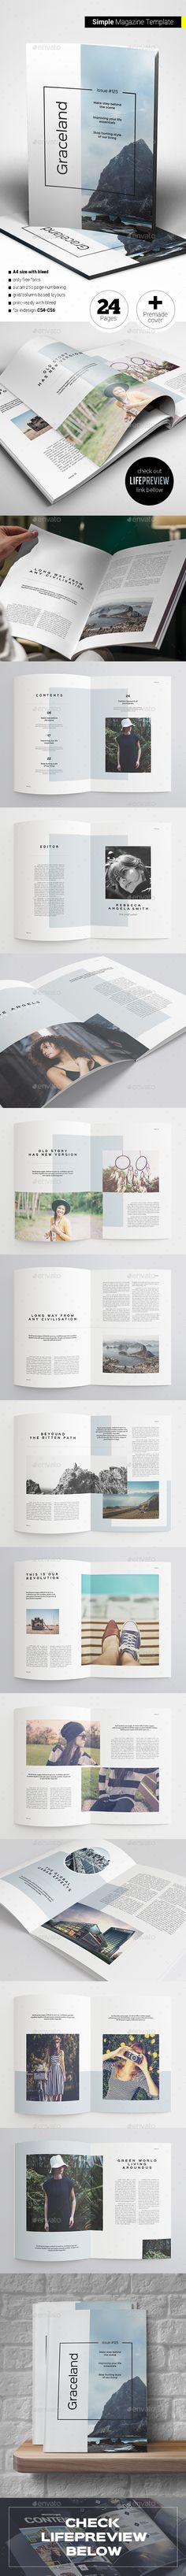 Buy Simple Magazine by -BeCreative- on GraphicRiver. Simple Magazine Template: Professional and clean InDesign magazine template. Includes 2 covers and 32 pages for arti. Book Cover Design, Book Design, Layout Design, Web Design, Editorial Layout, Editorial Design, Mise En Page Magazine, Magazin Covers, Magazin Design